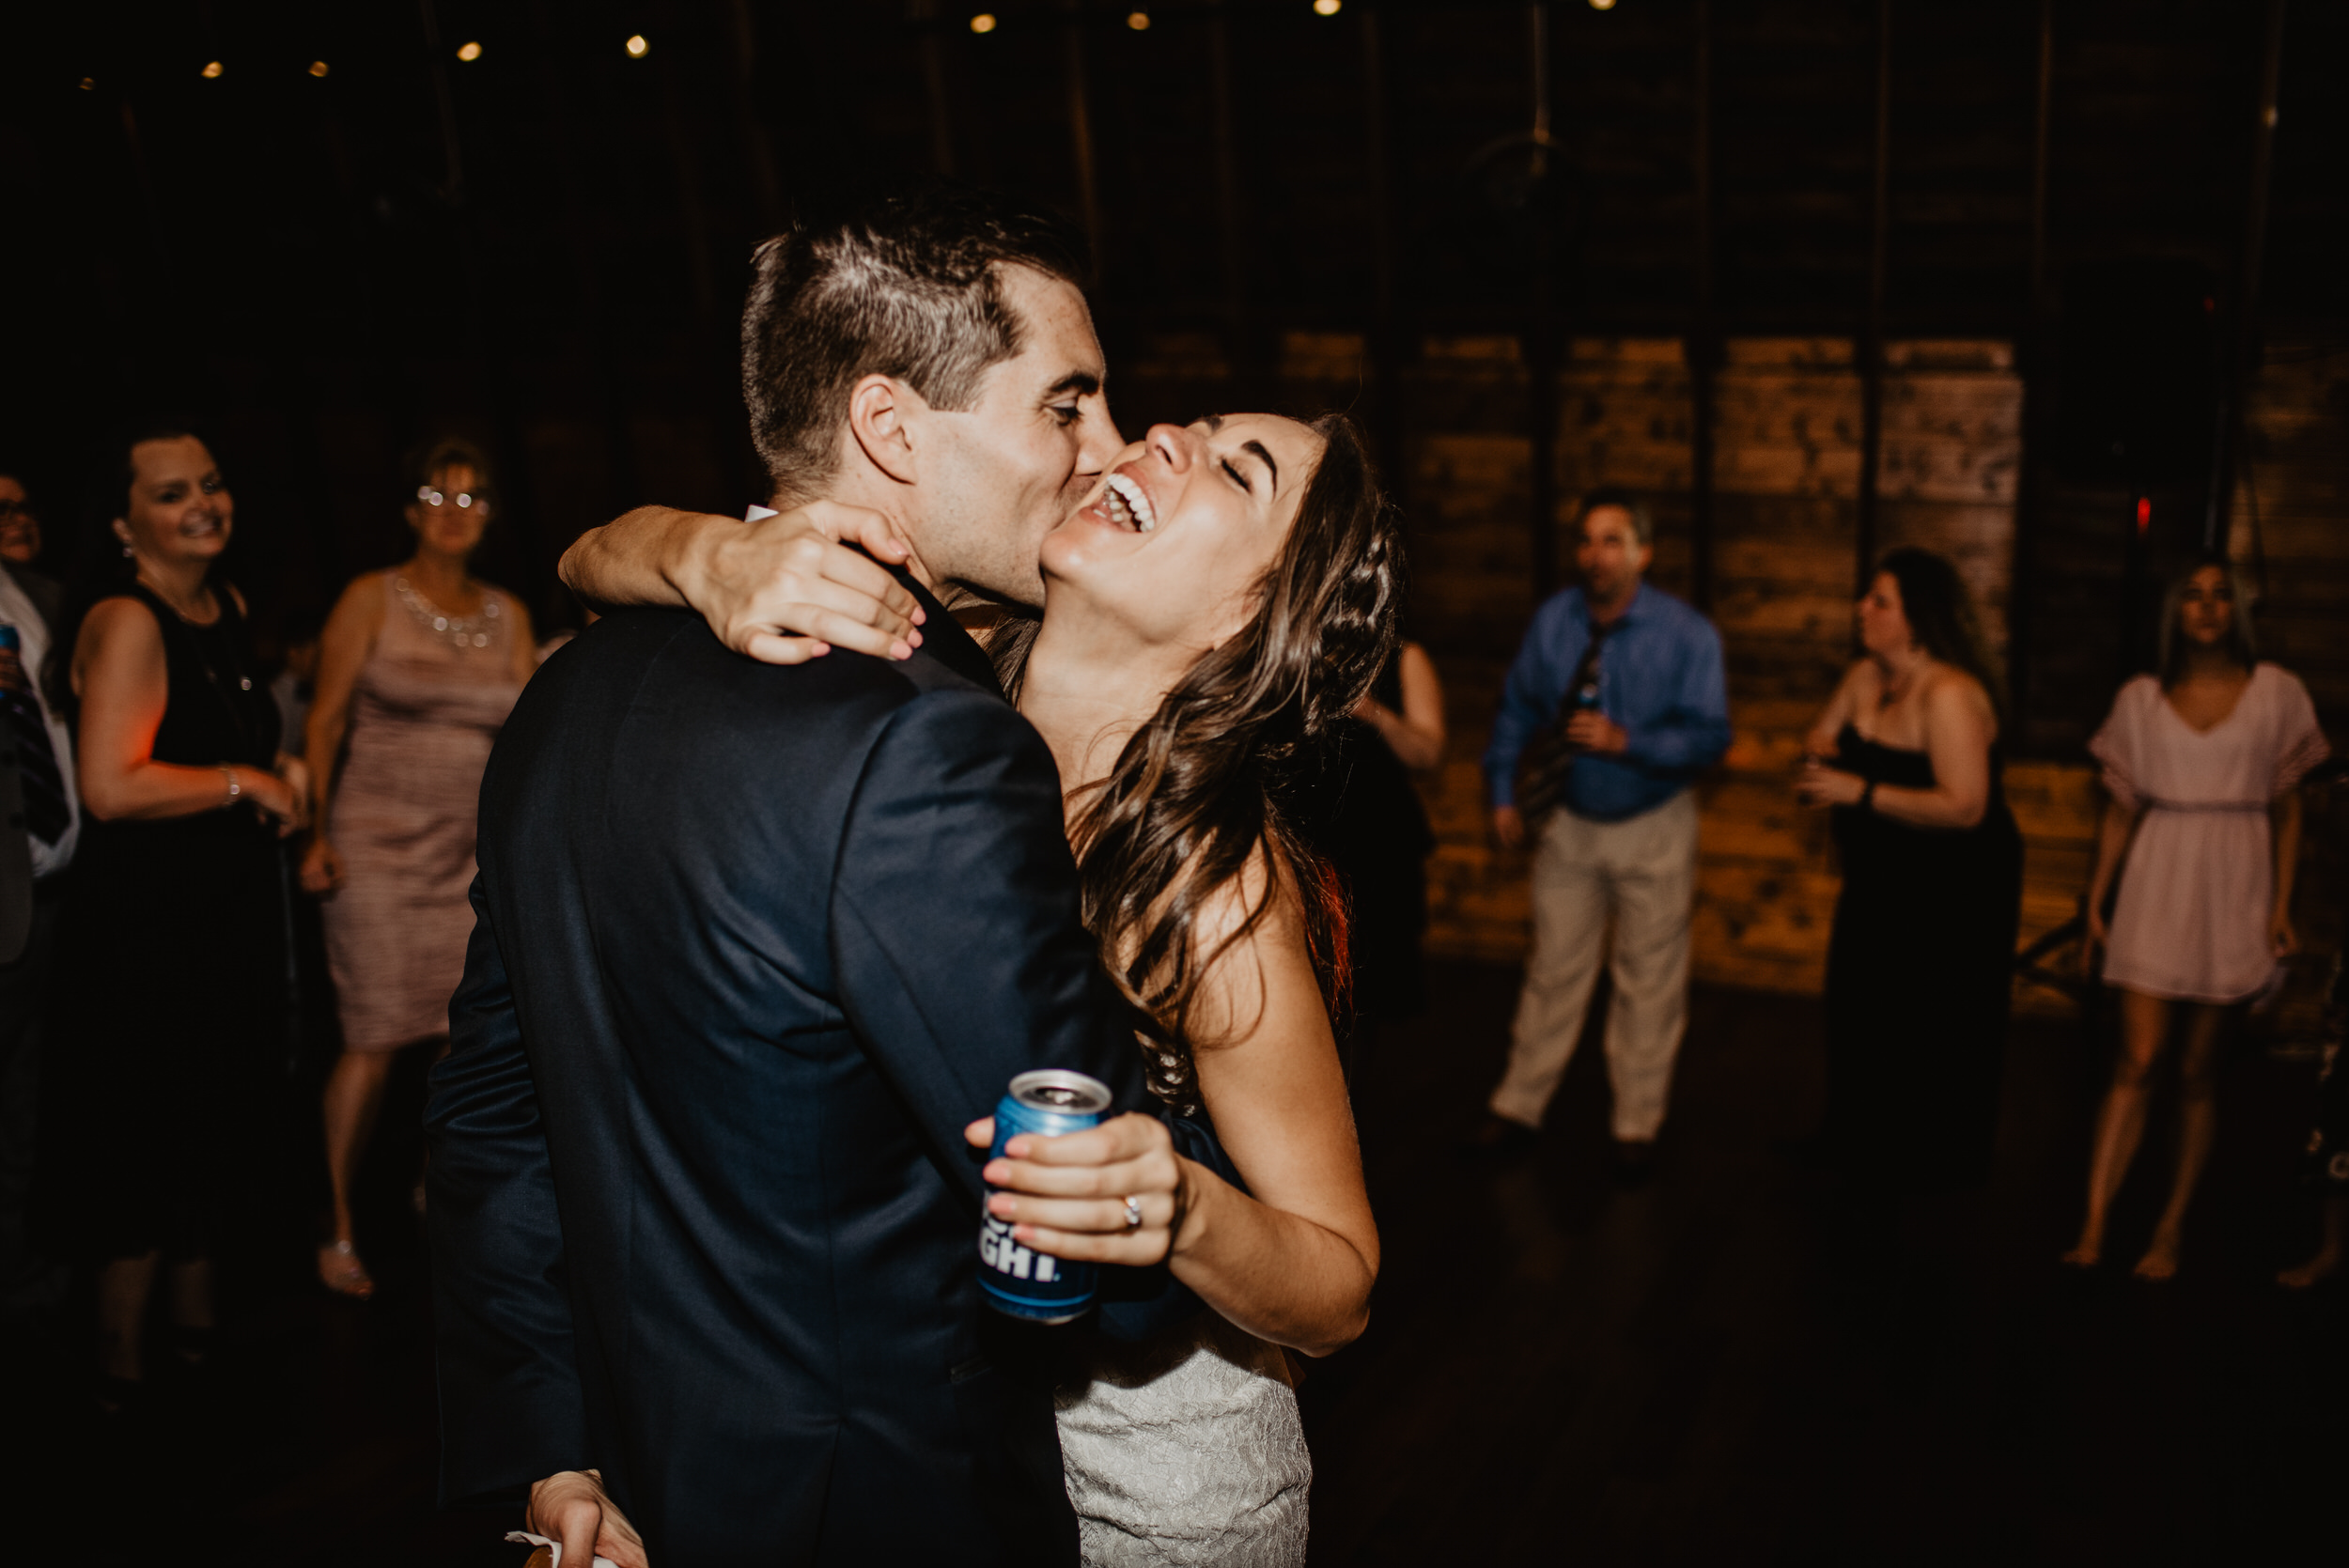 The Barn at the Ackerhurst Dairy Farm Omaha Nebraska Wedding Kaylie Sirek Photography138.jpg